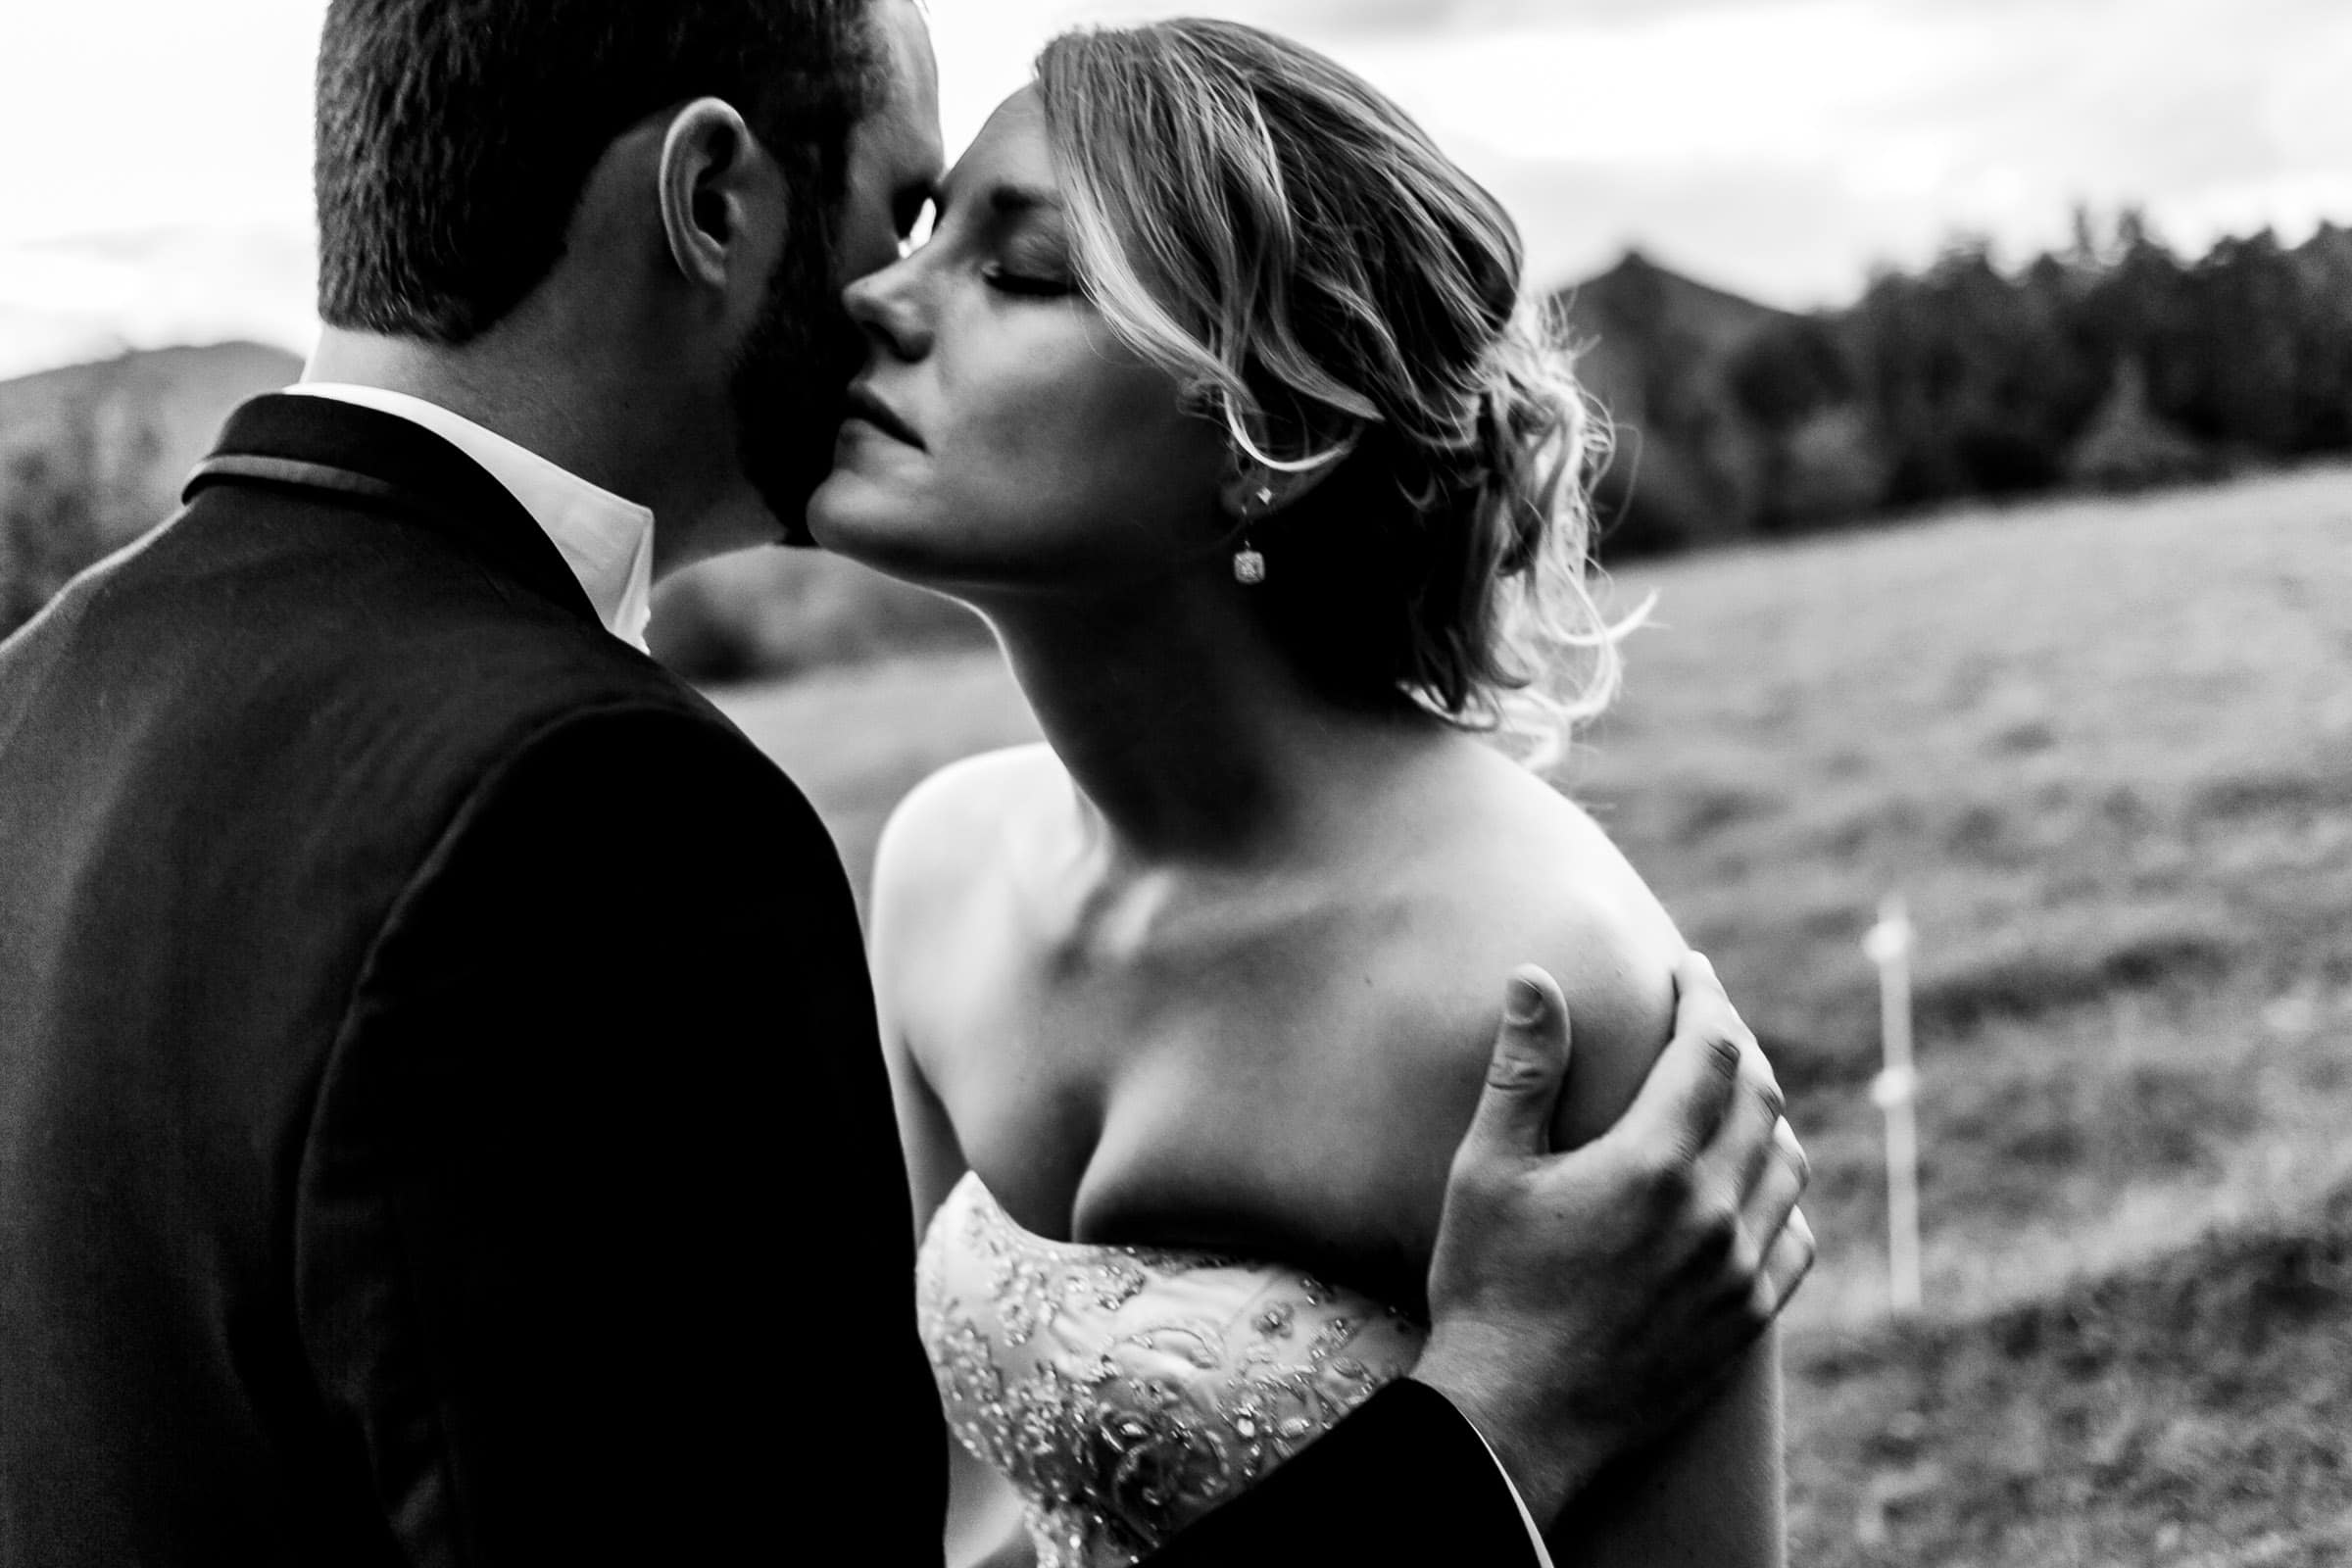 A close up and intimate Bride and groom in a field during a Trapp Family Lodge wedding in Stowe, Vermont.